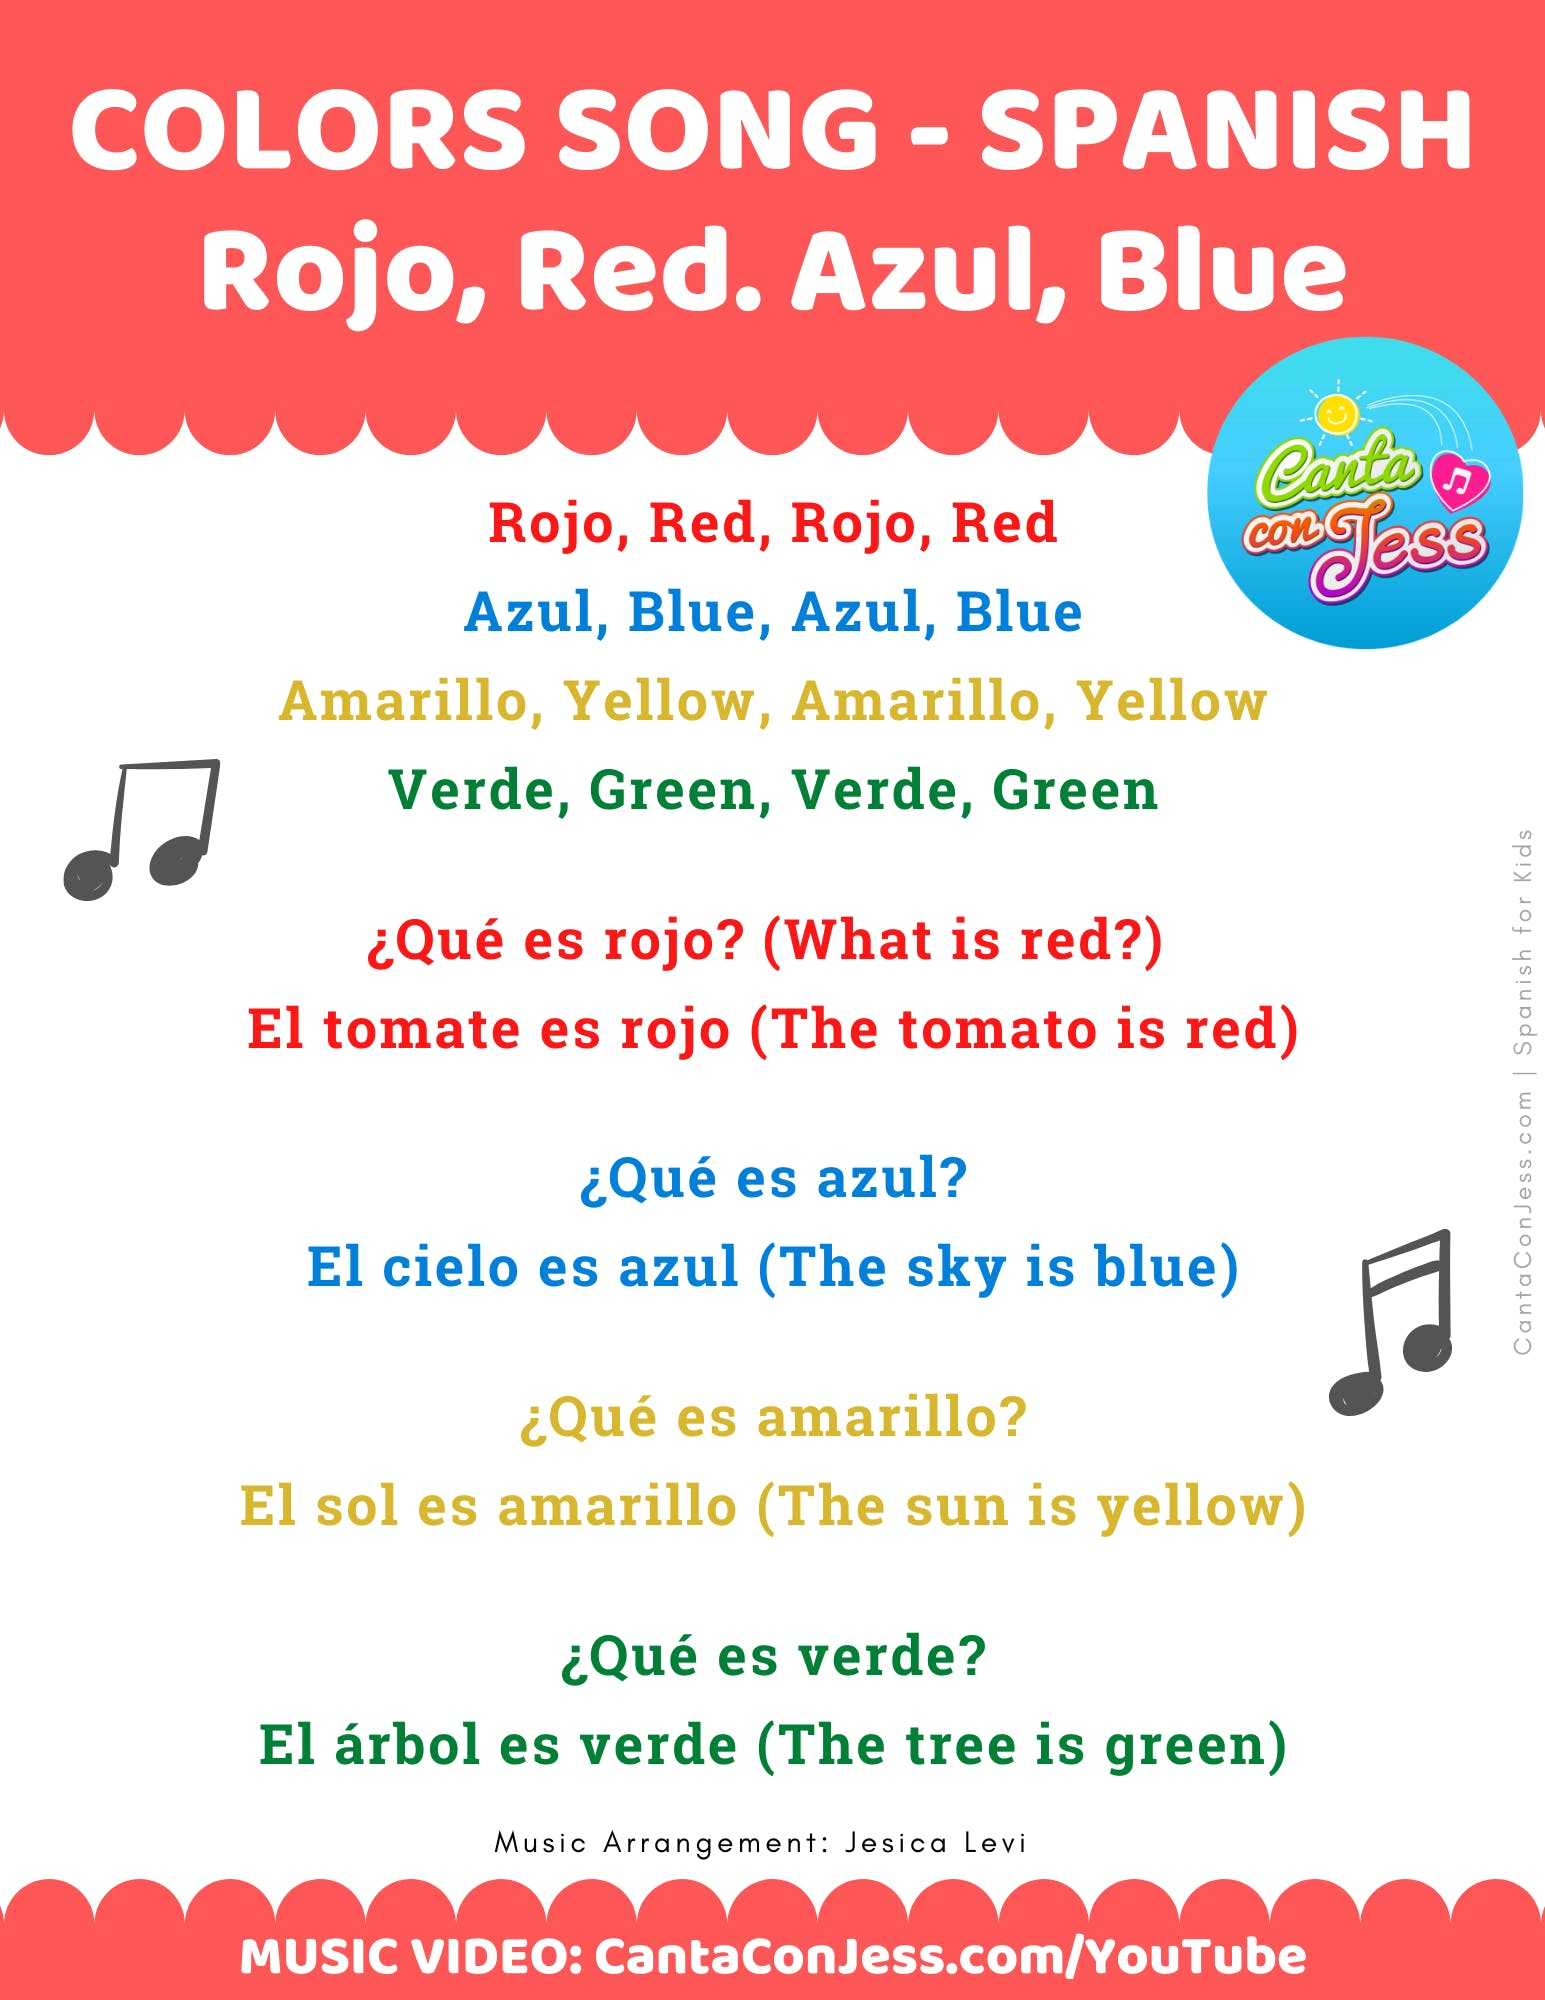 Basic Colors in Spanish: Rojo Red, Azul Blue, Amarillo Yellow, Verde Green Song Lyrics - Canta Con Jess - Spanish for Kids